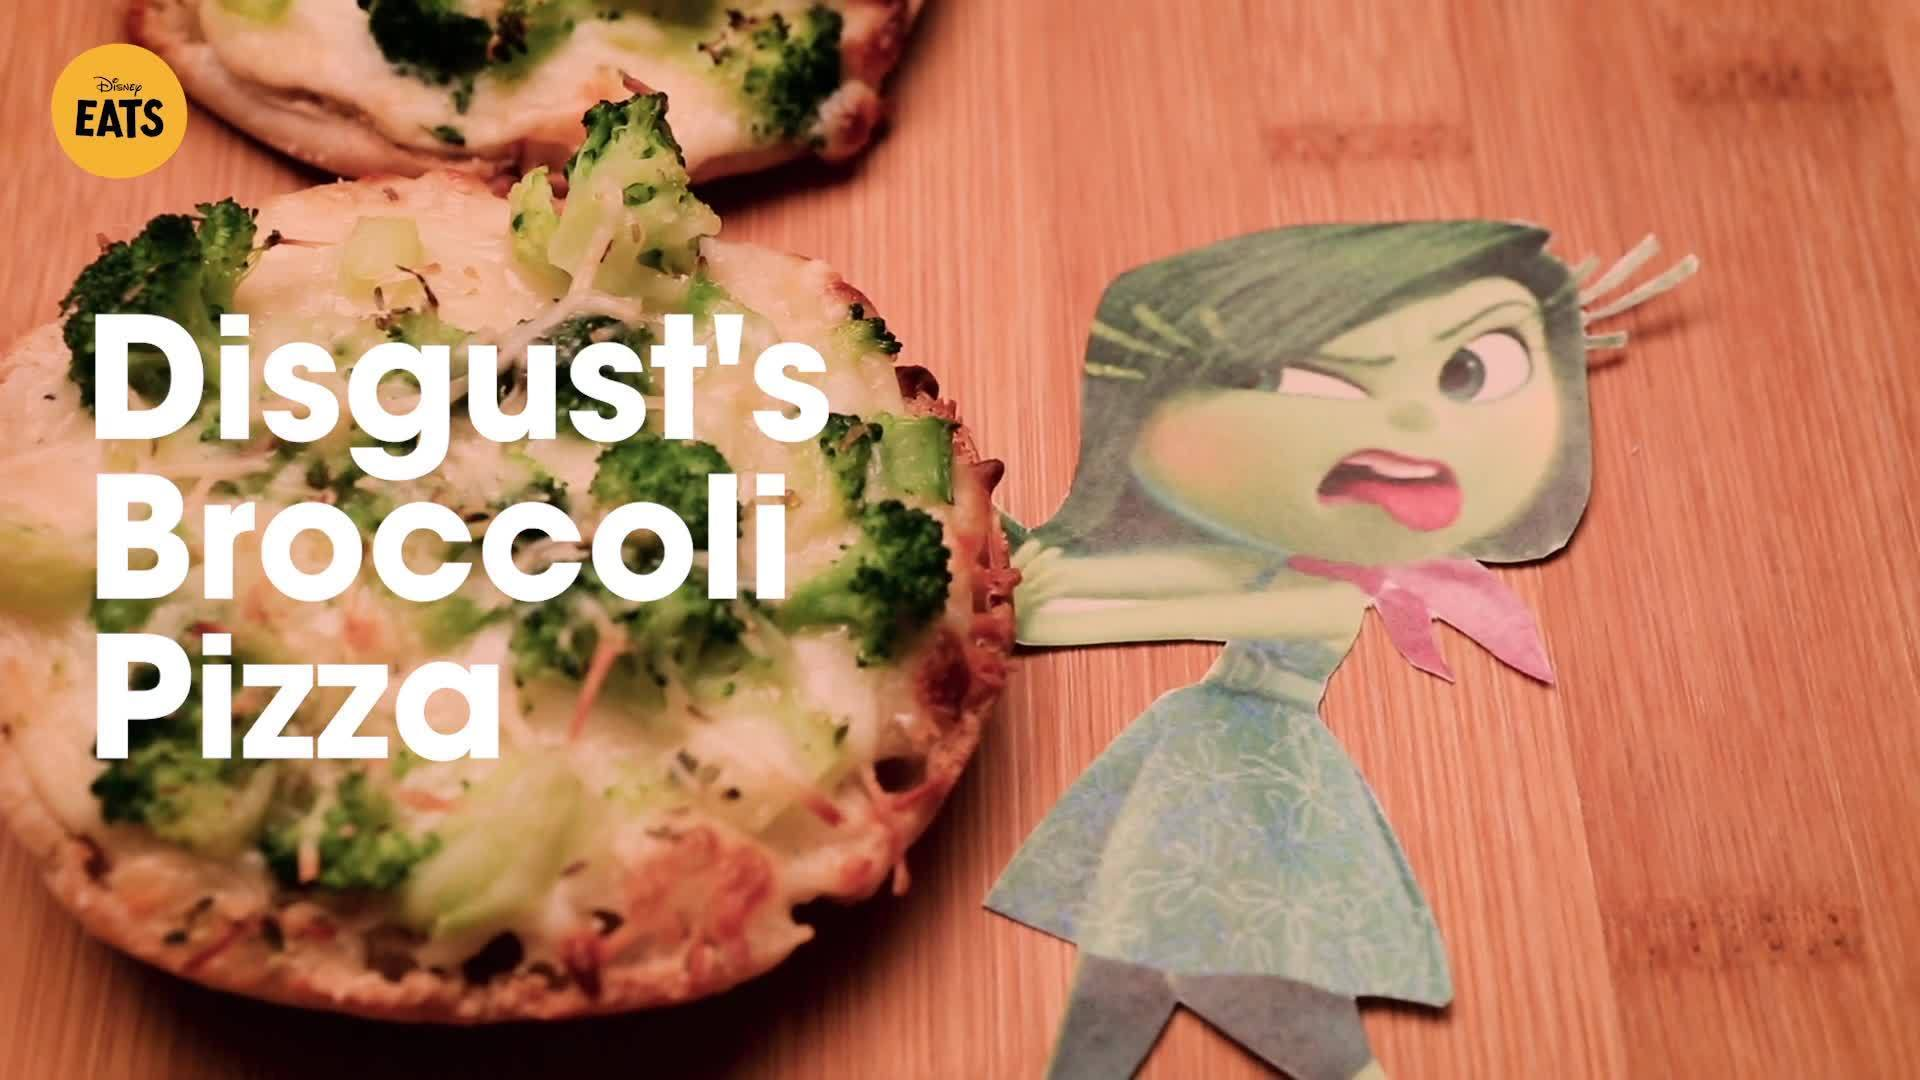 Inside Out's Disgust's Broccoli Pizza | Disney Eats